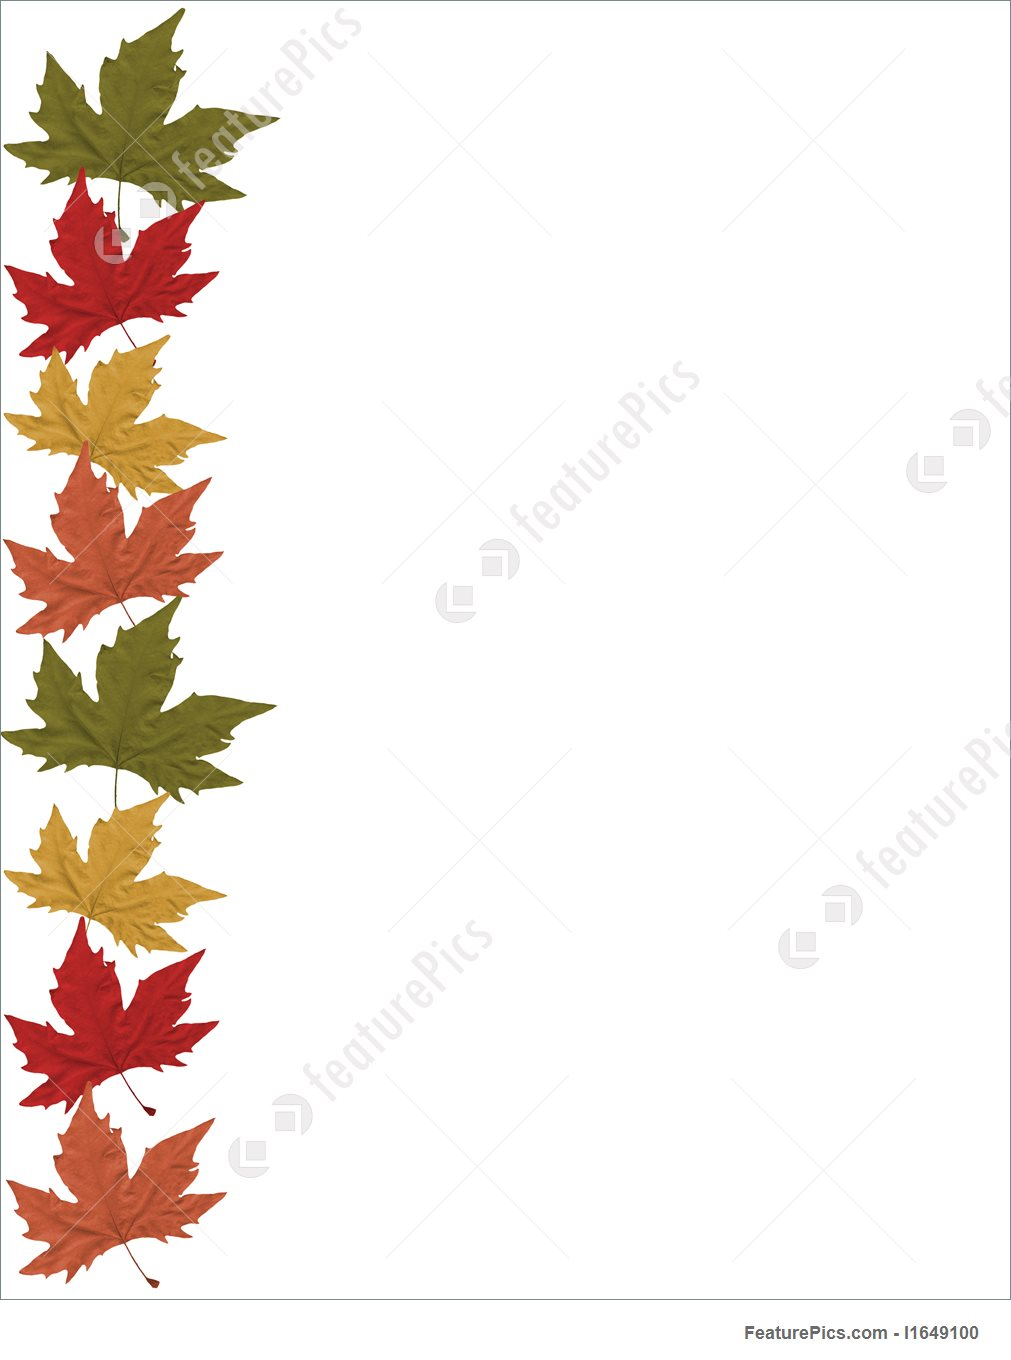 1011x1360 Fall Leaves Border Stock Illustration I1649100